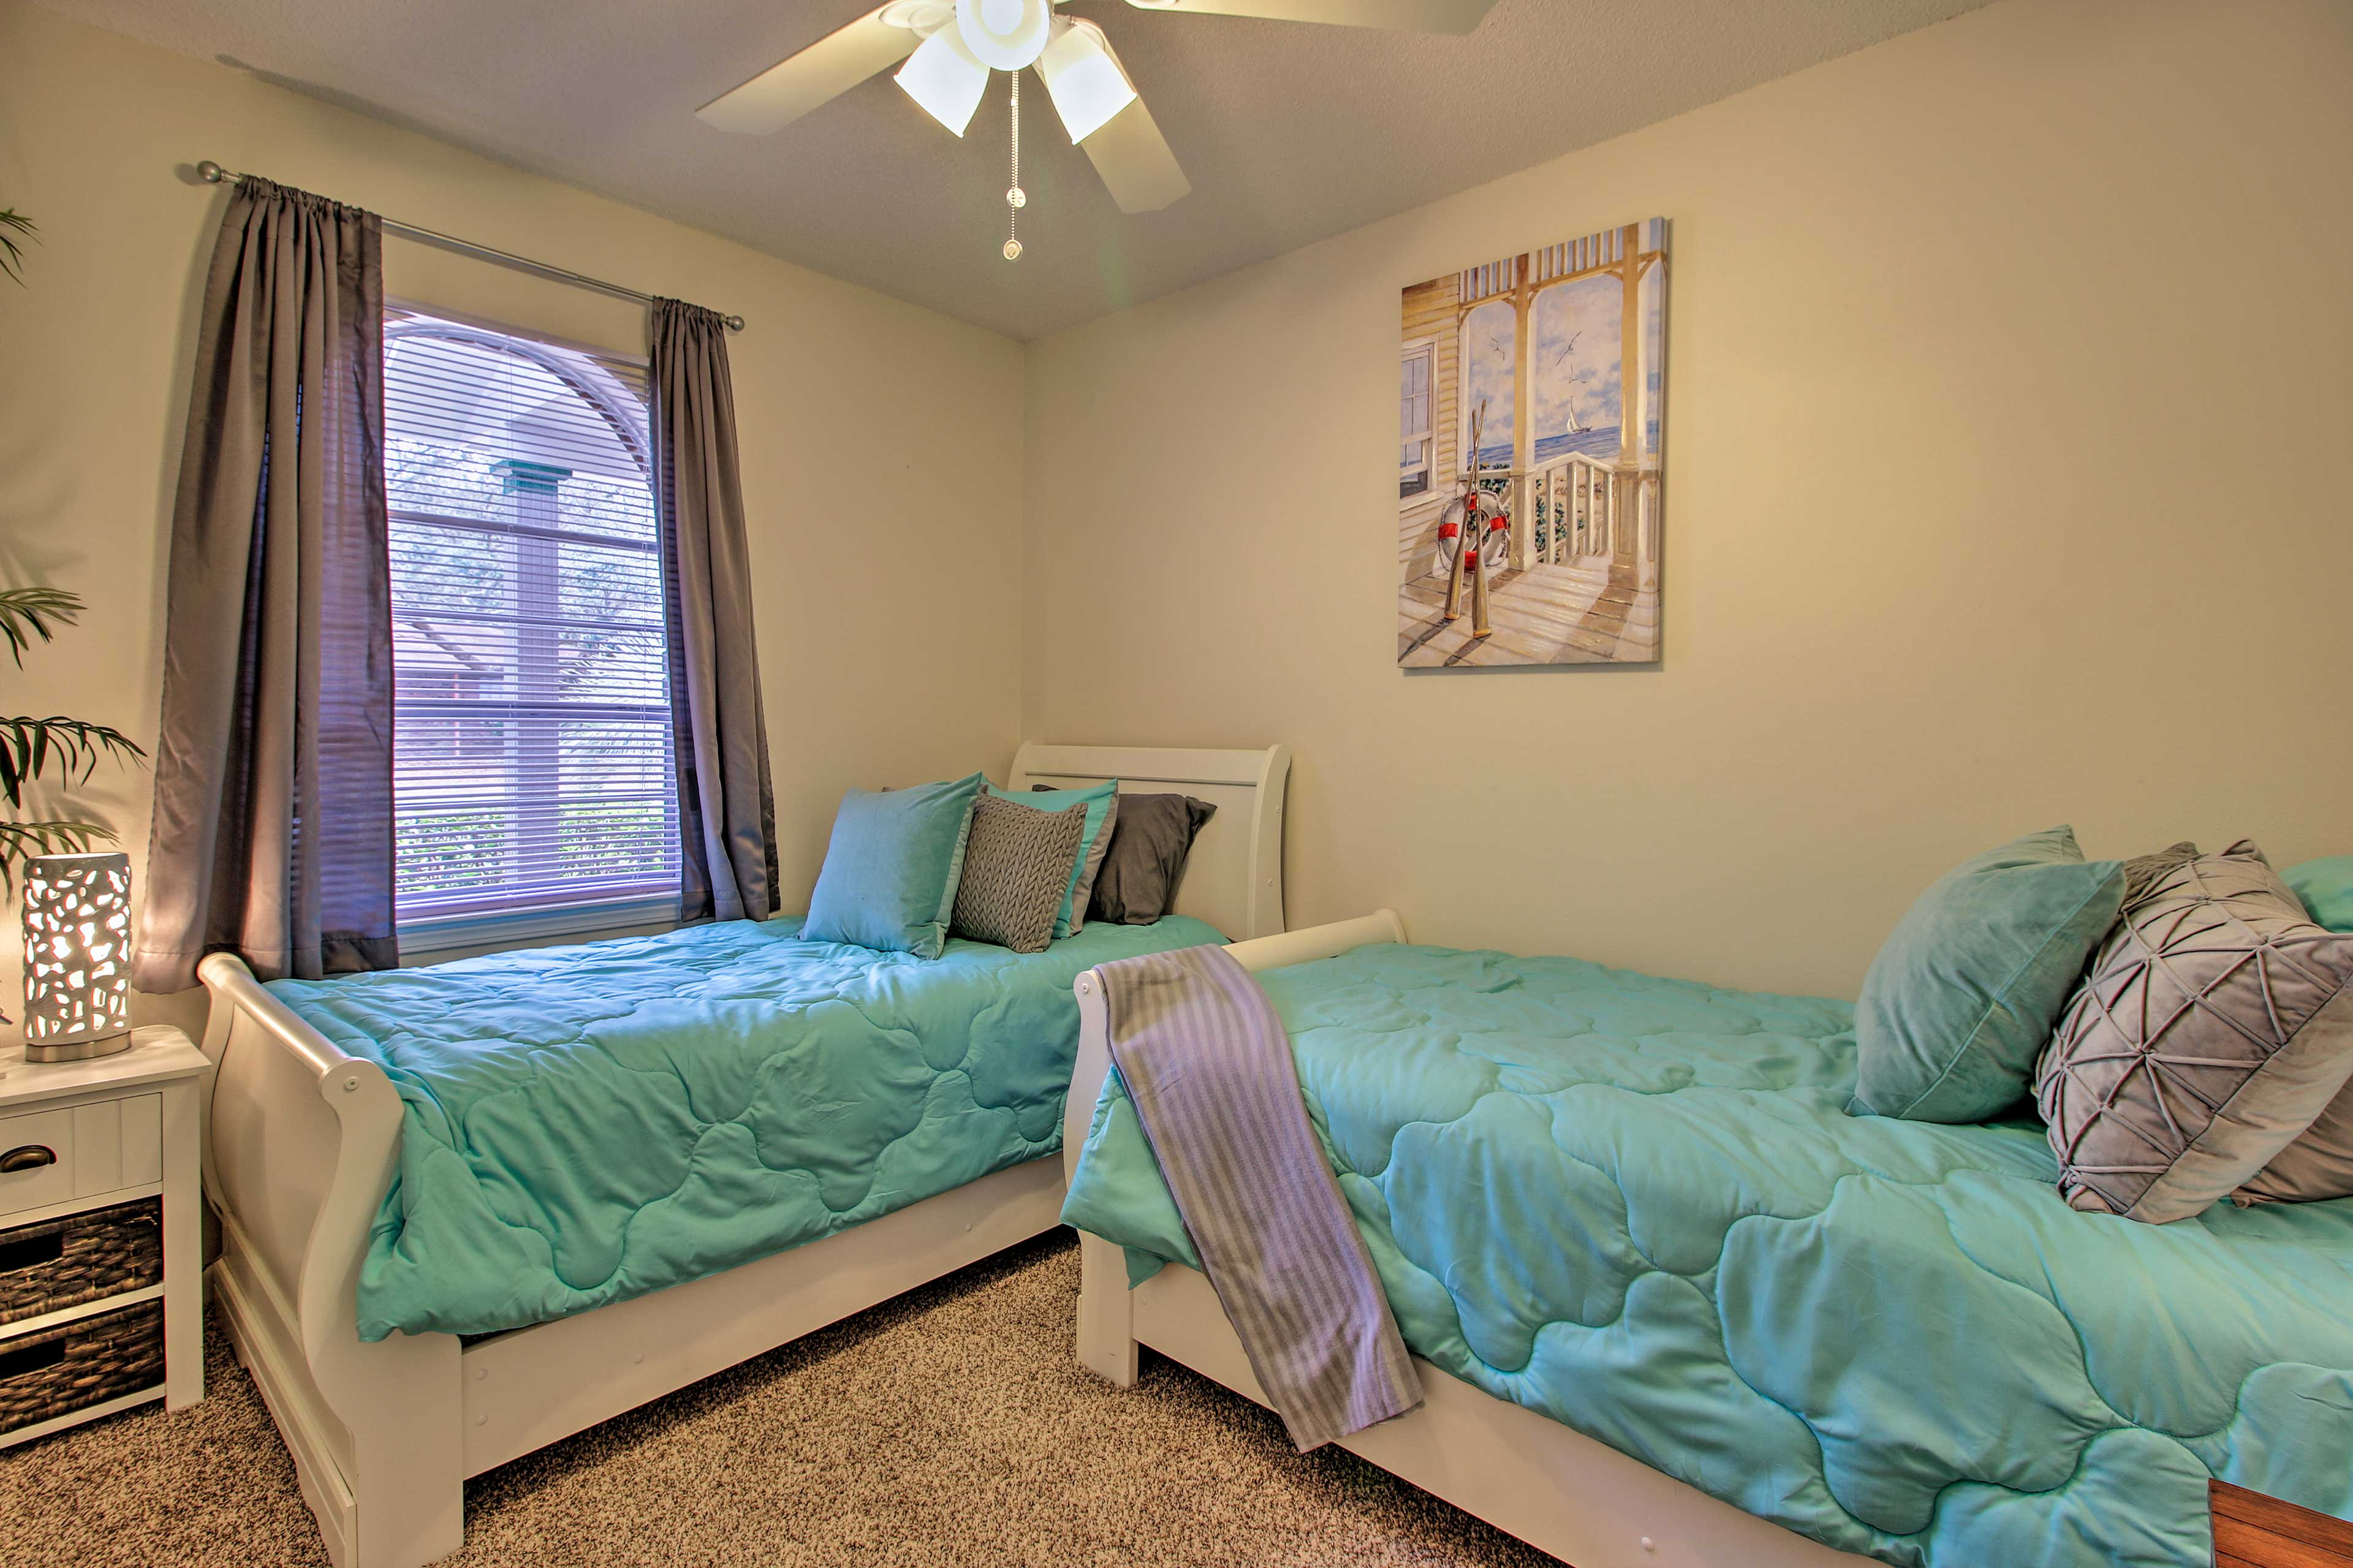 The 2 twin beds make this room great for kids.